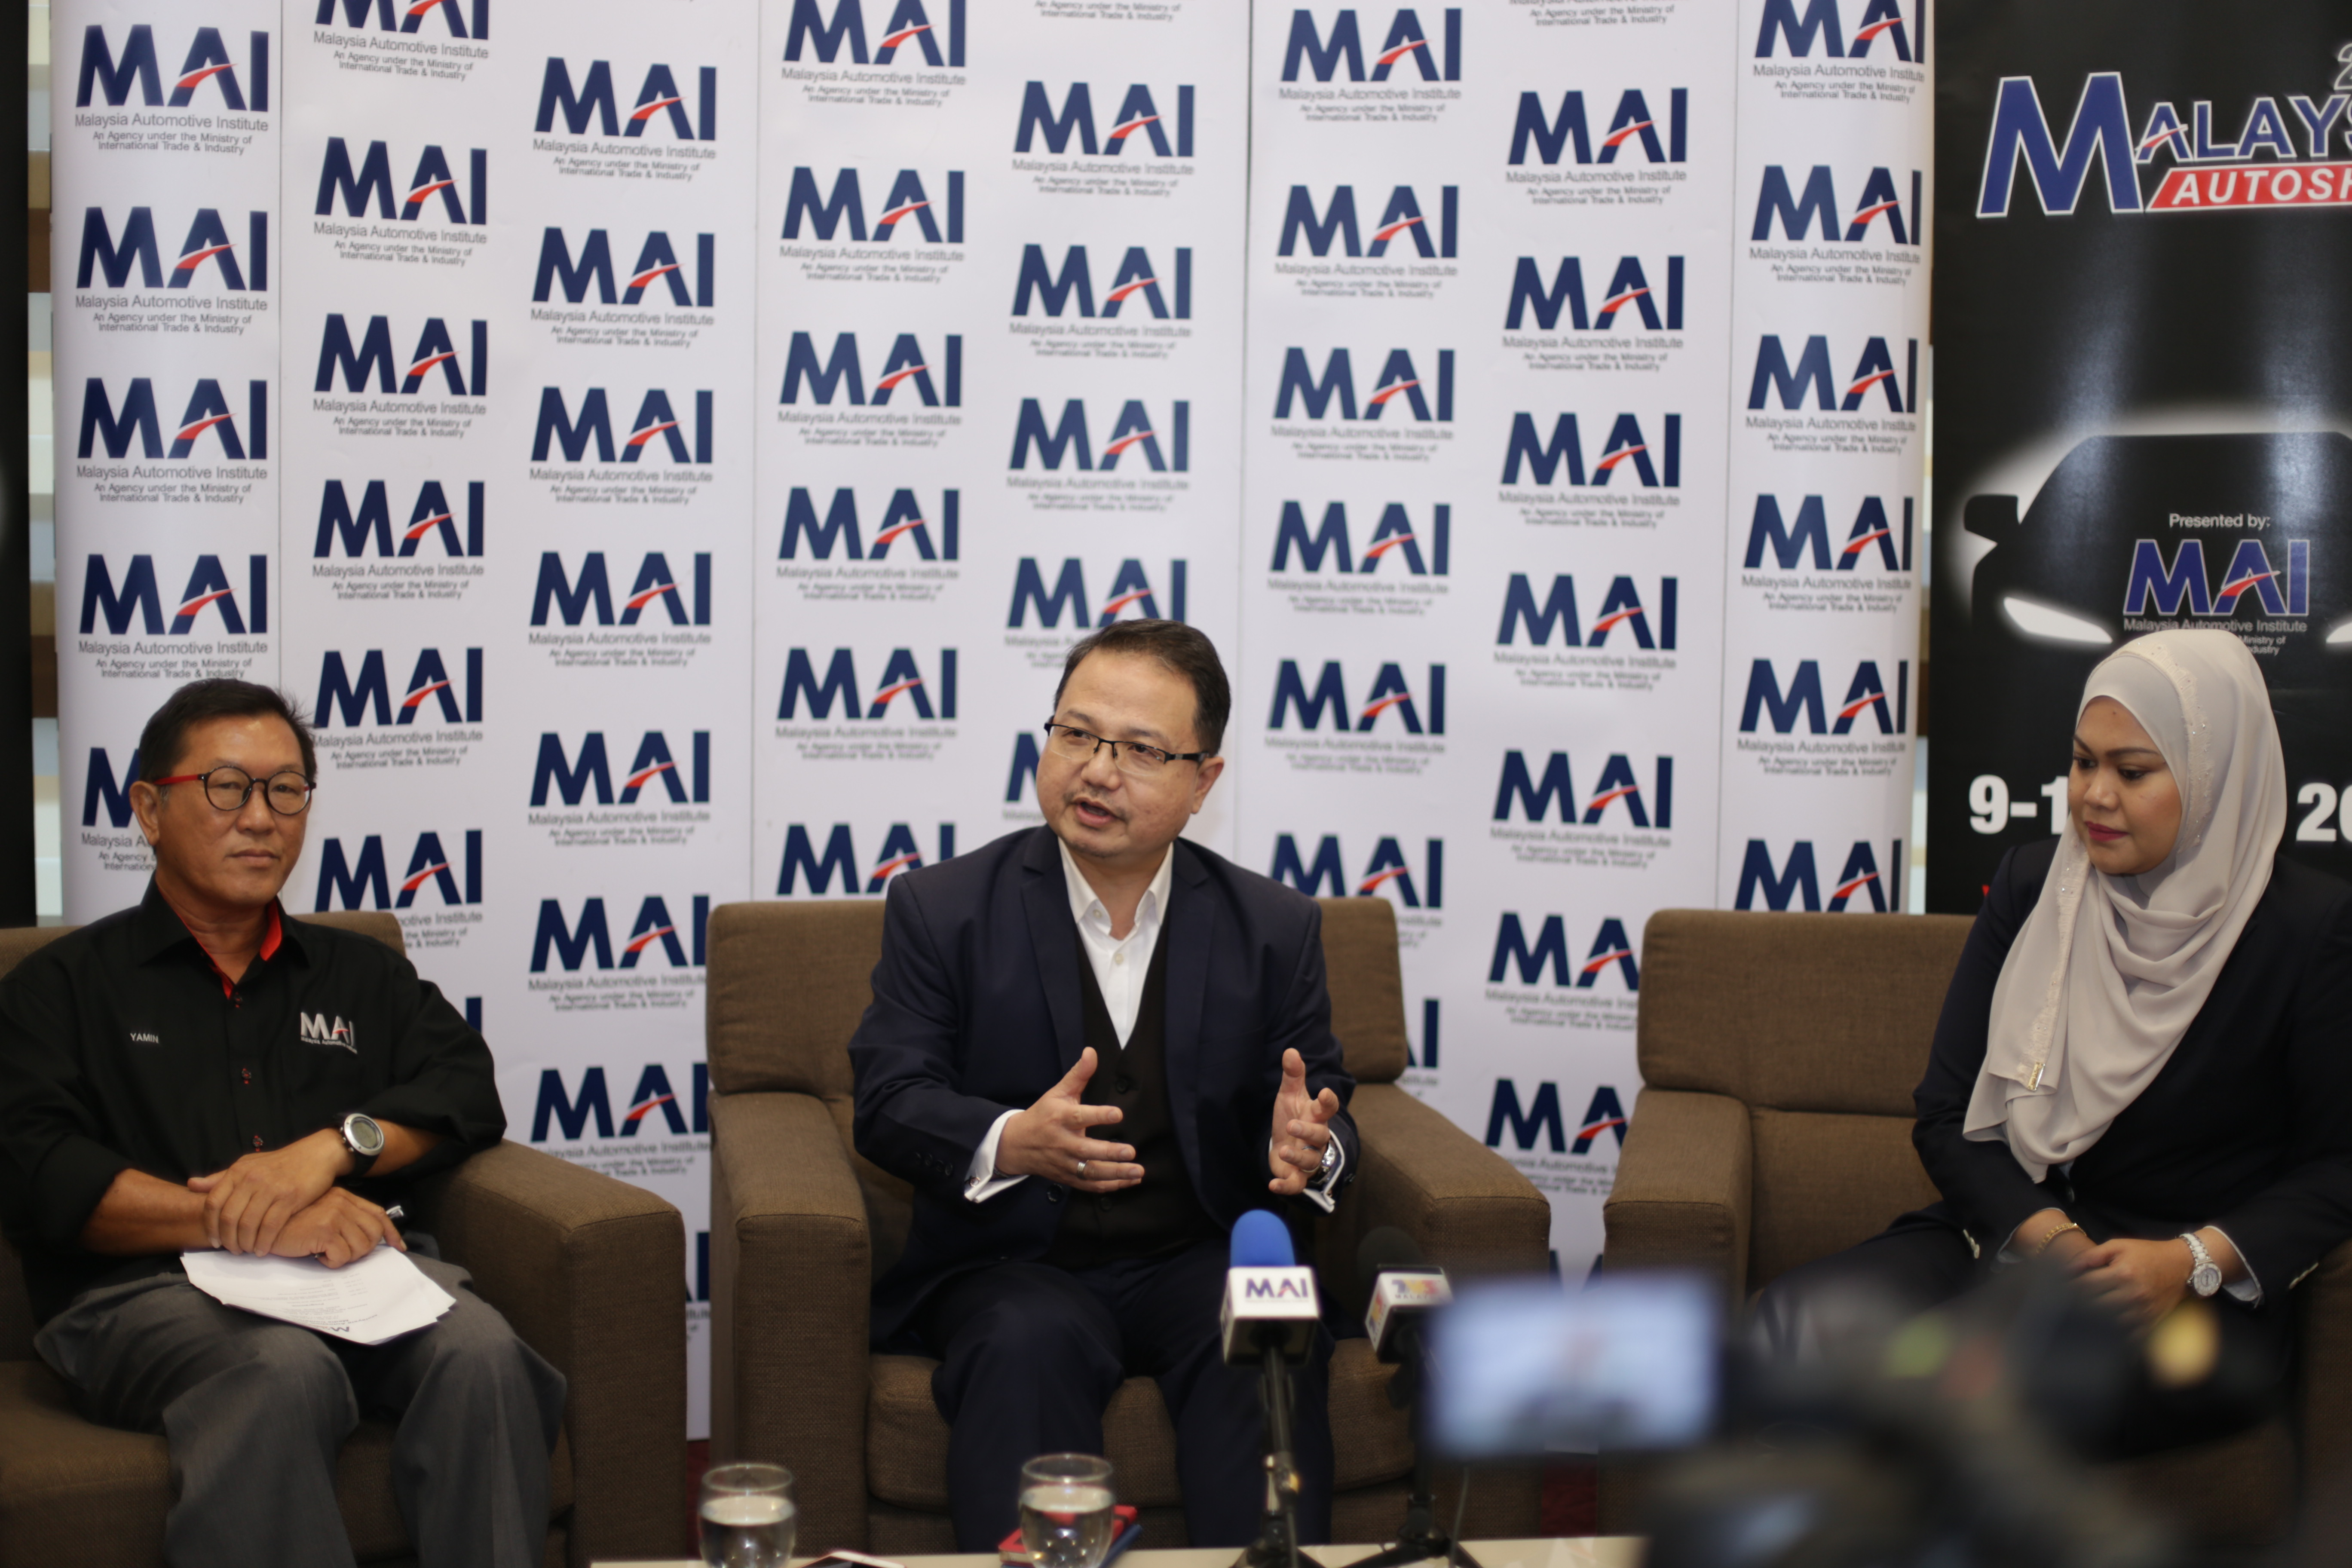 Malaysia Autoshow 2017's co-organiser Yamin Vong, Malaysia Automotive Institute's chief executive officer Dato' Madani Sahari and MAEPS chief operating officer Norafizah Rahman updating the media on the progress of the Malaysia Autoshow 2017.